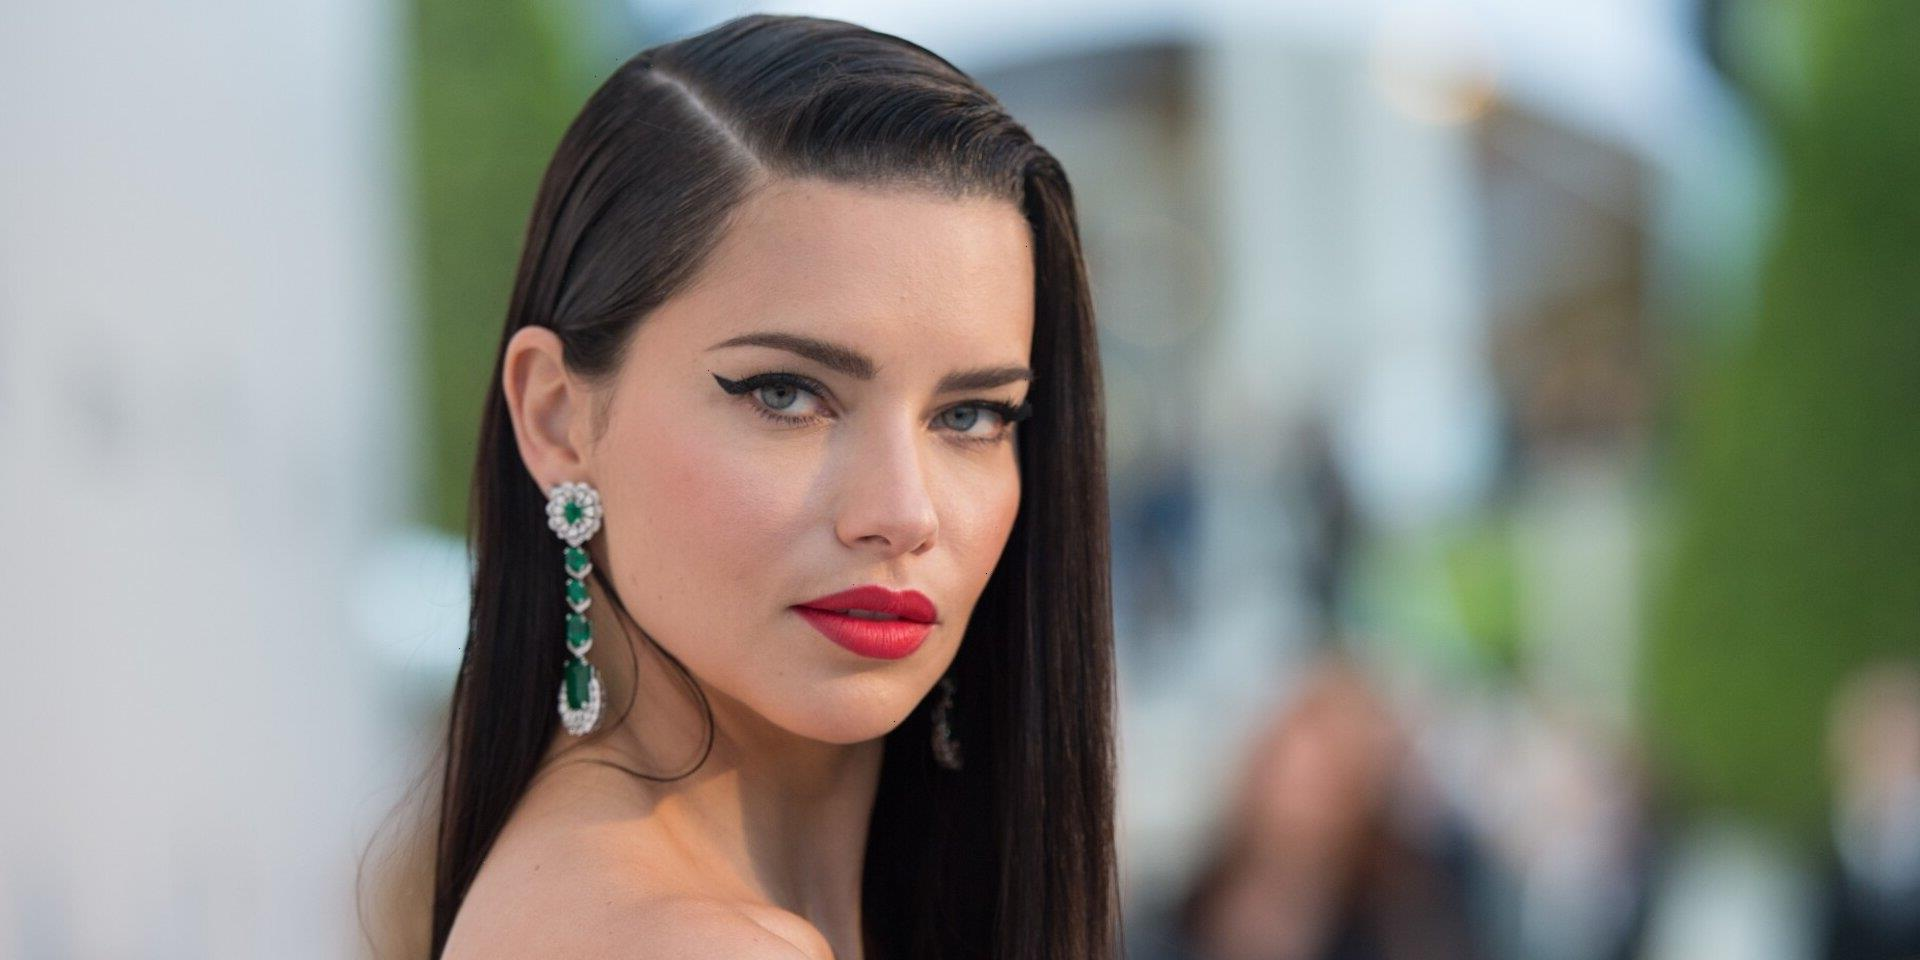 The Internet Has Thoughts About Adriana Lima's Cultural Appropriation